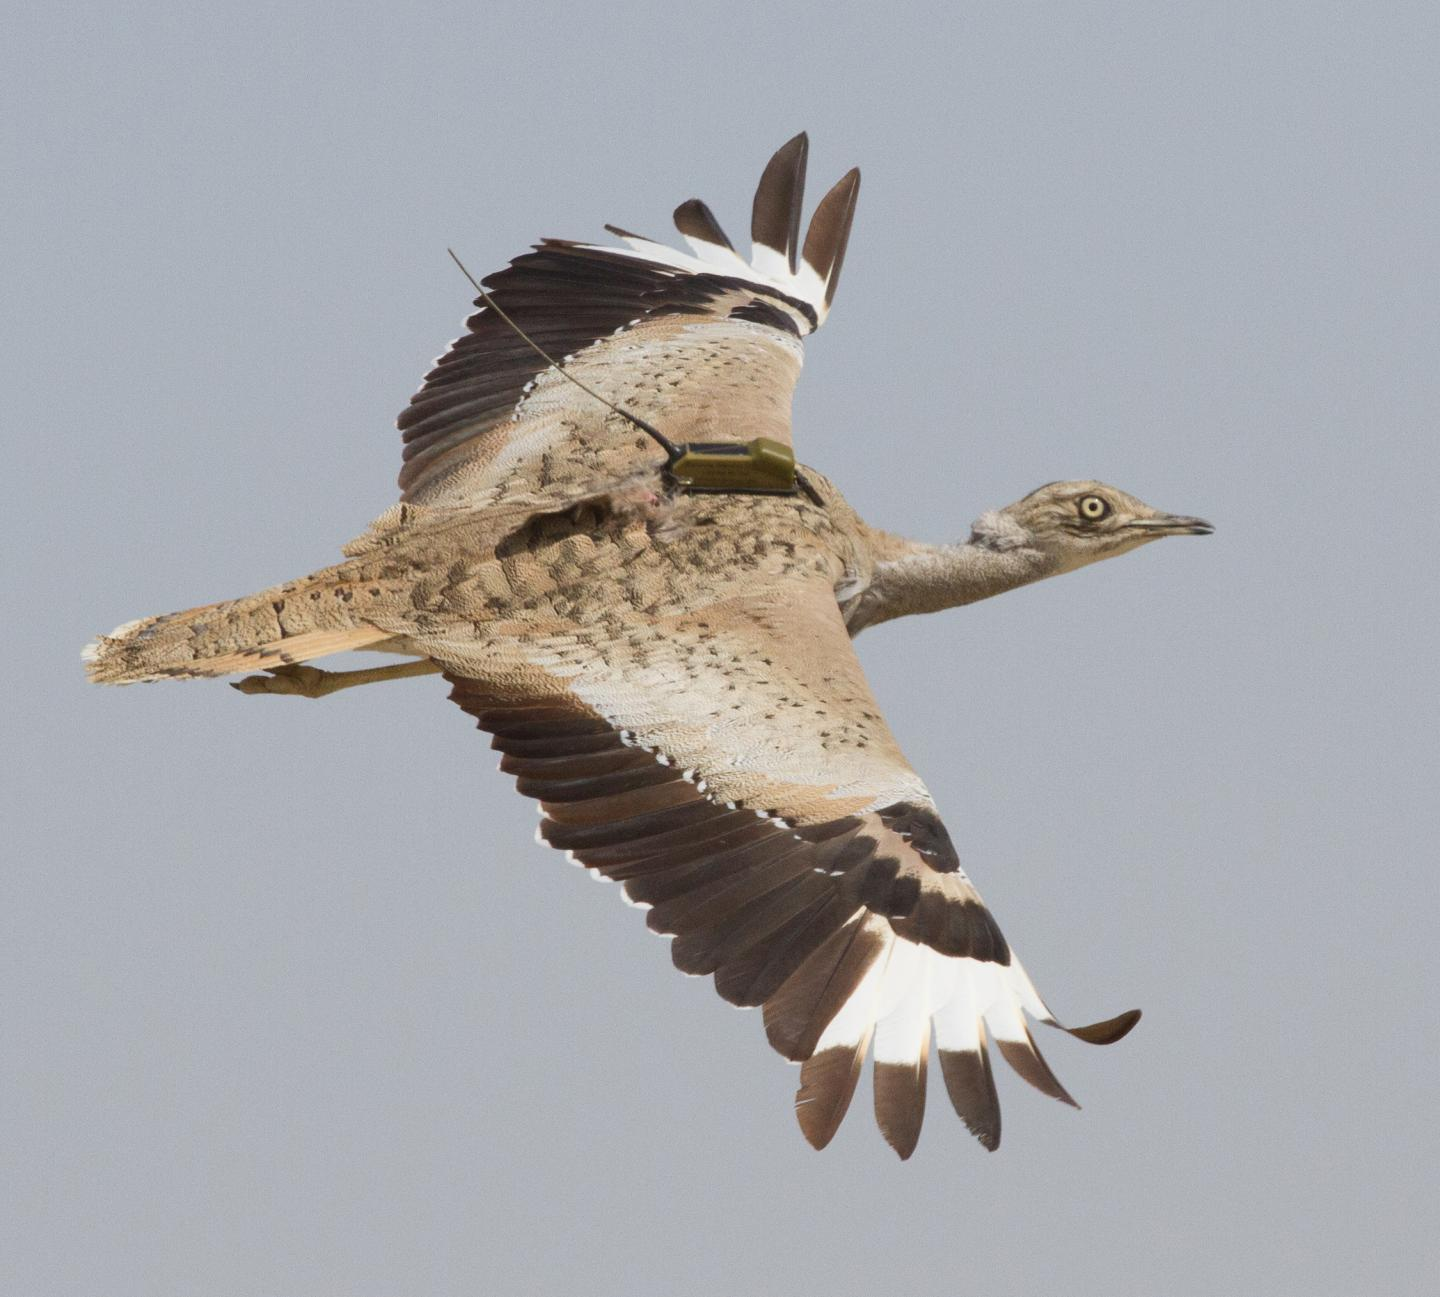 Asian houbara fitted with a satellite transmitter.